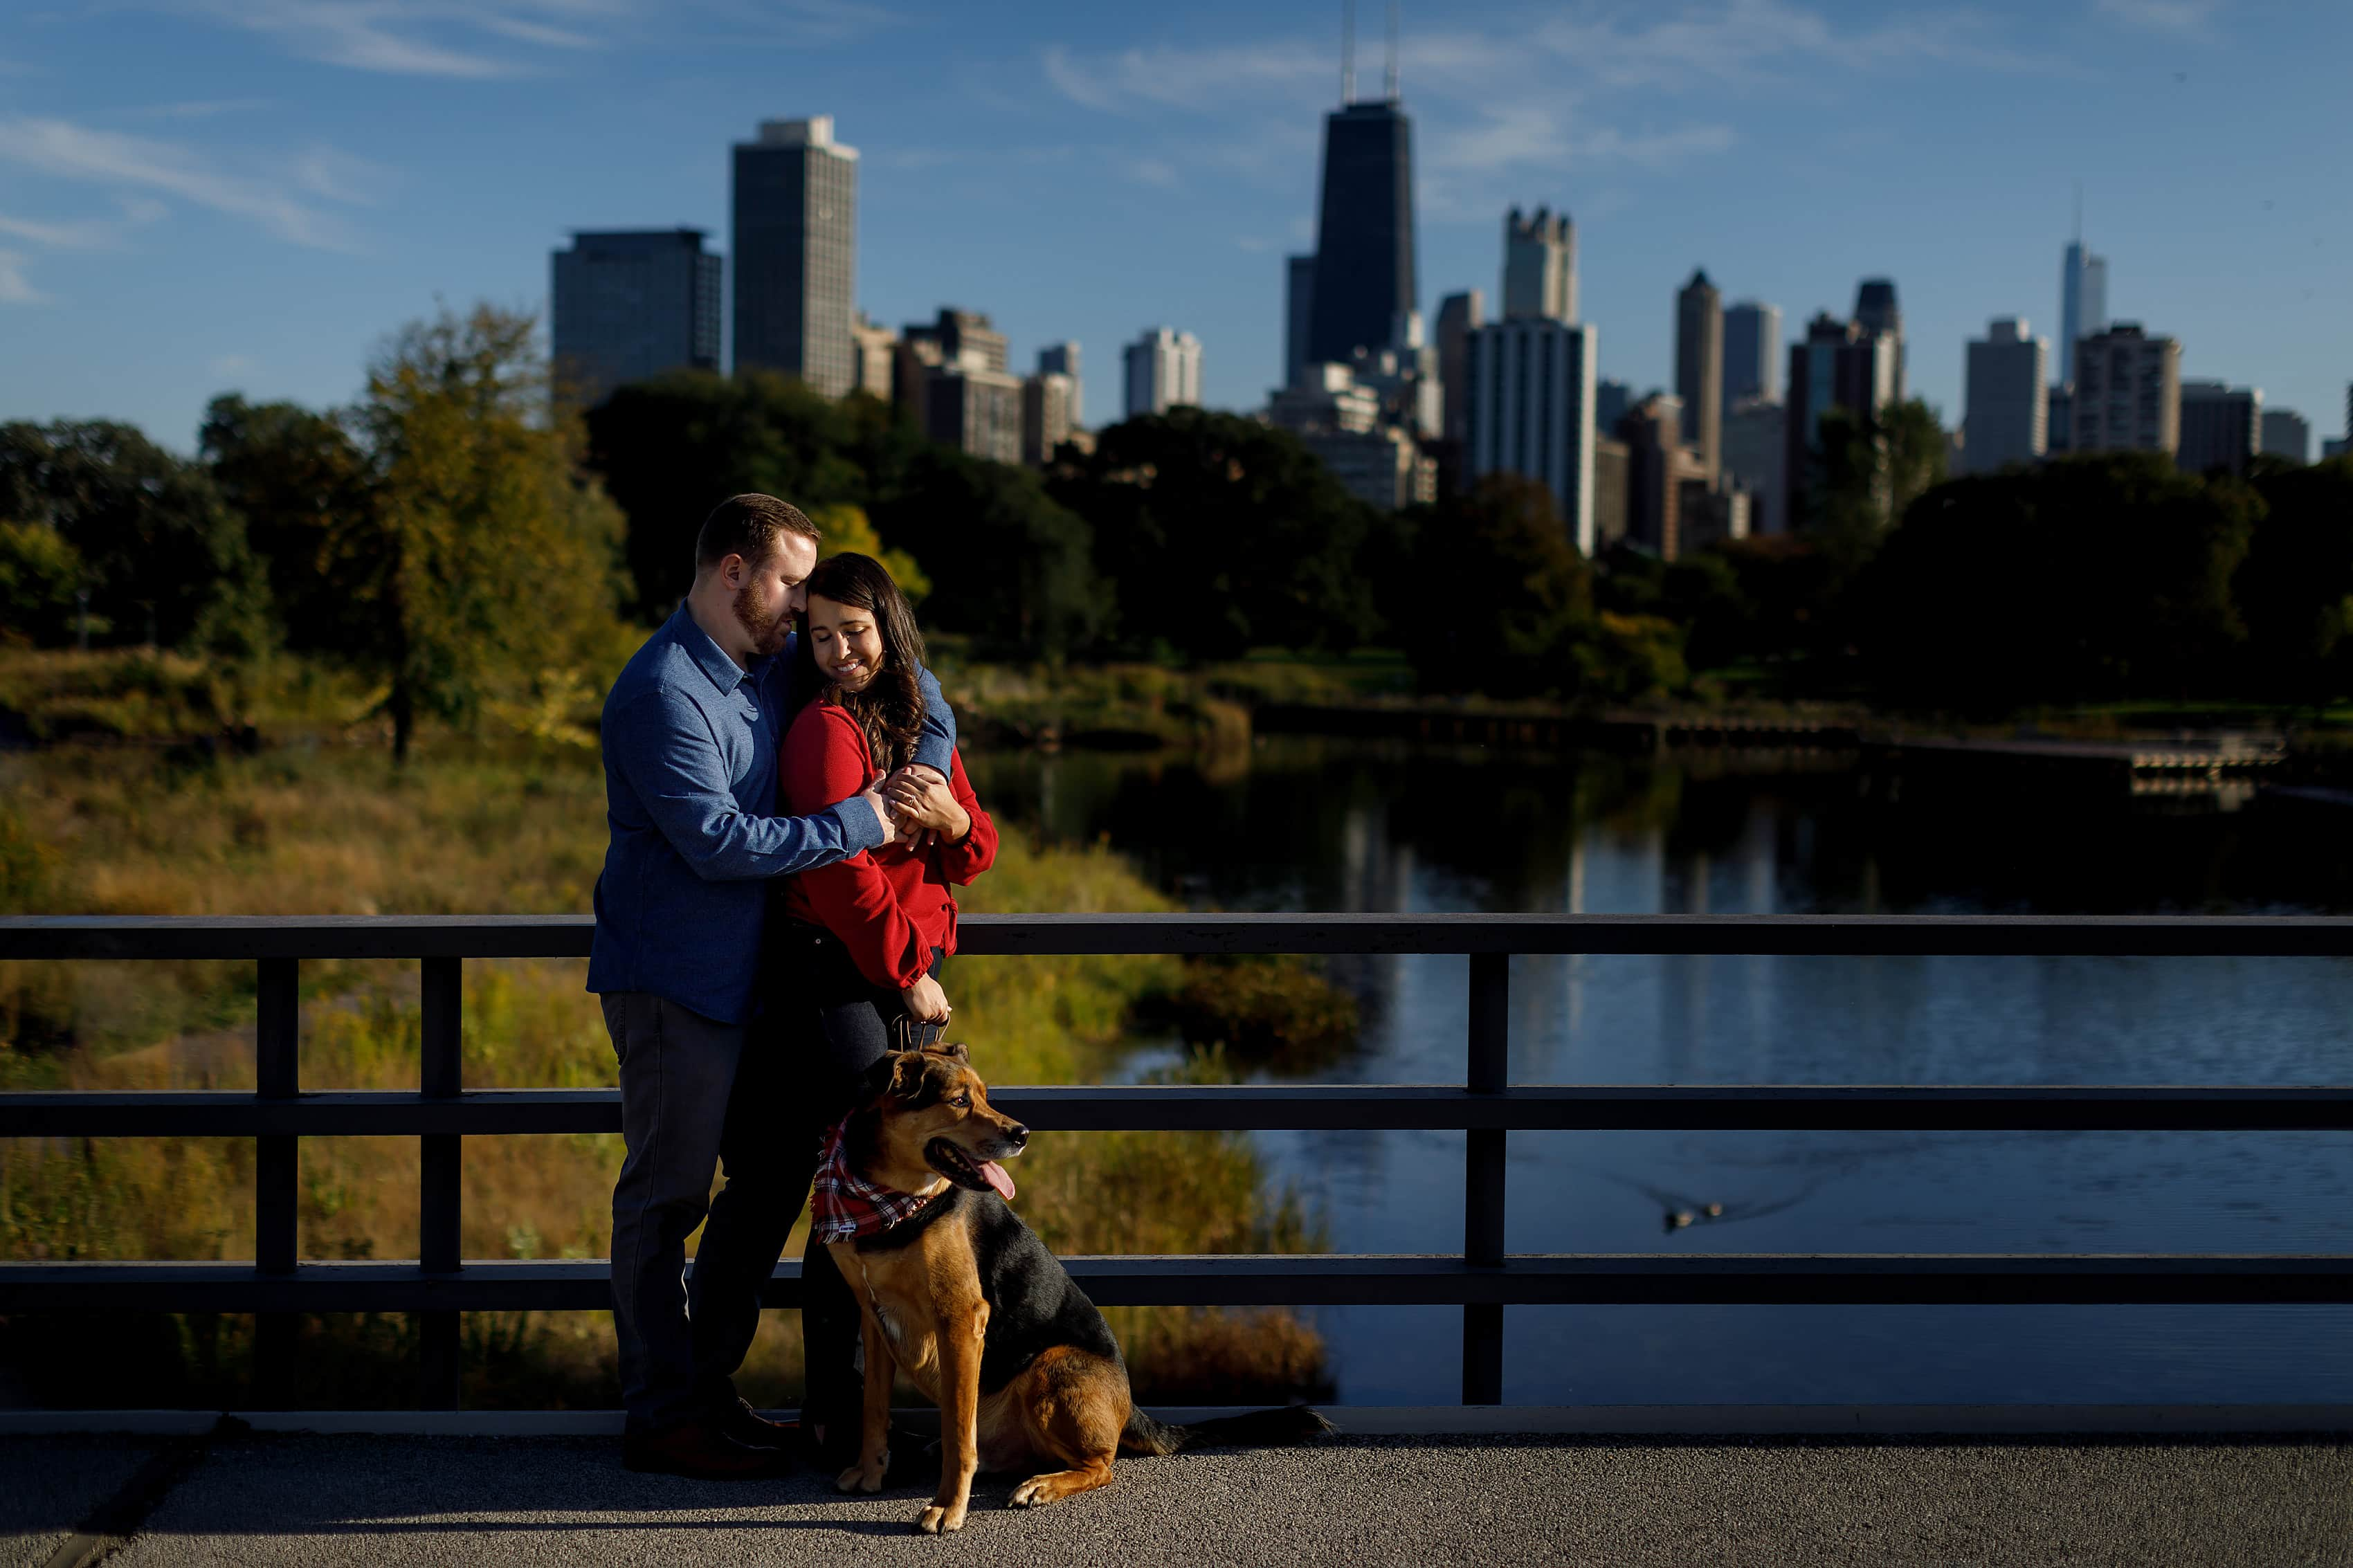 couple poses with their dog on the bridge Lincoln Park in Chicago during fall season engagement session with Chicago Skyline in the background